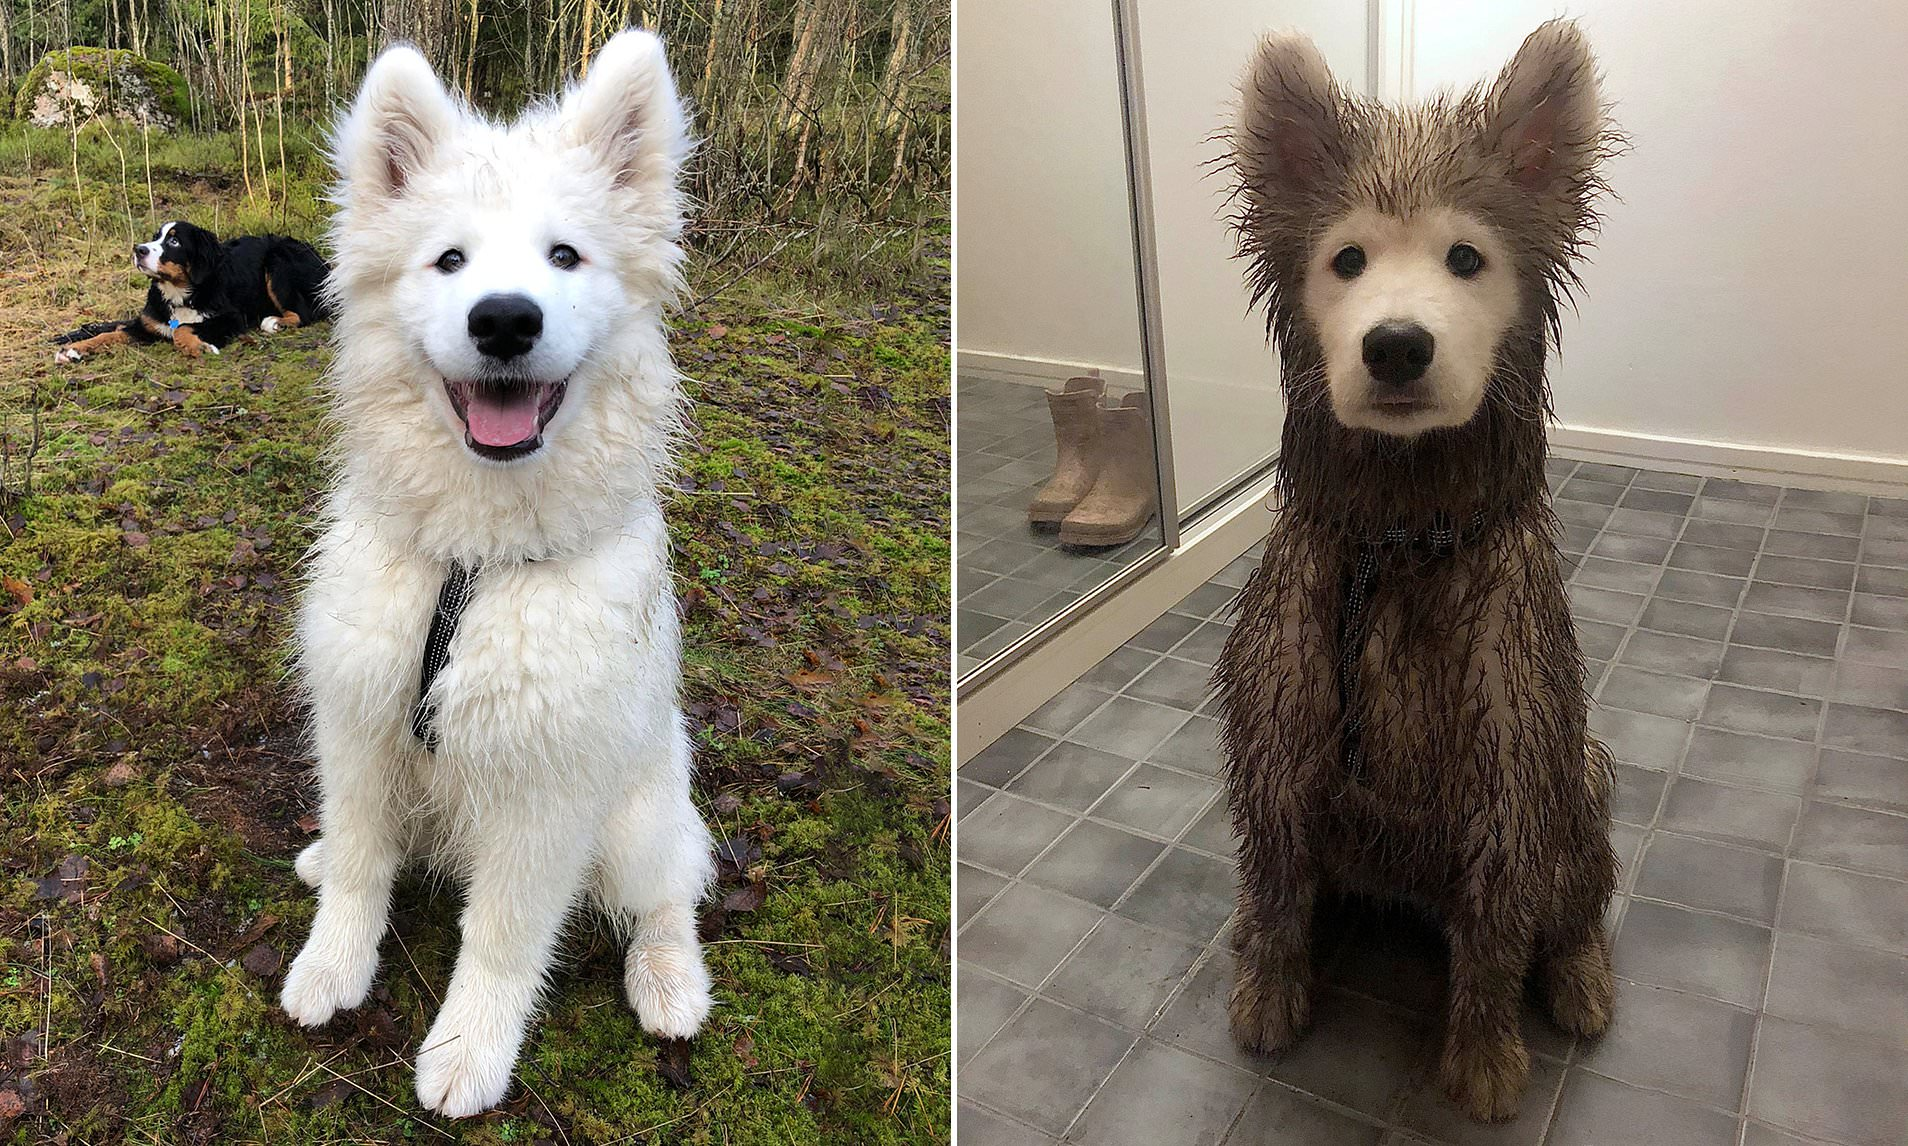 Before and after a playdate in mud